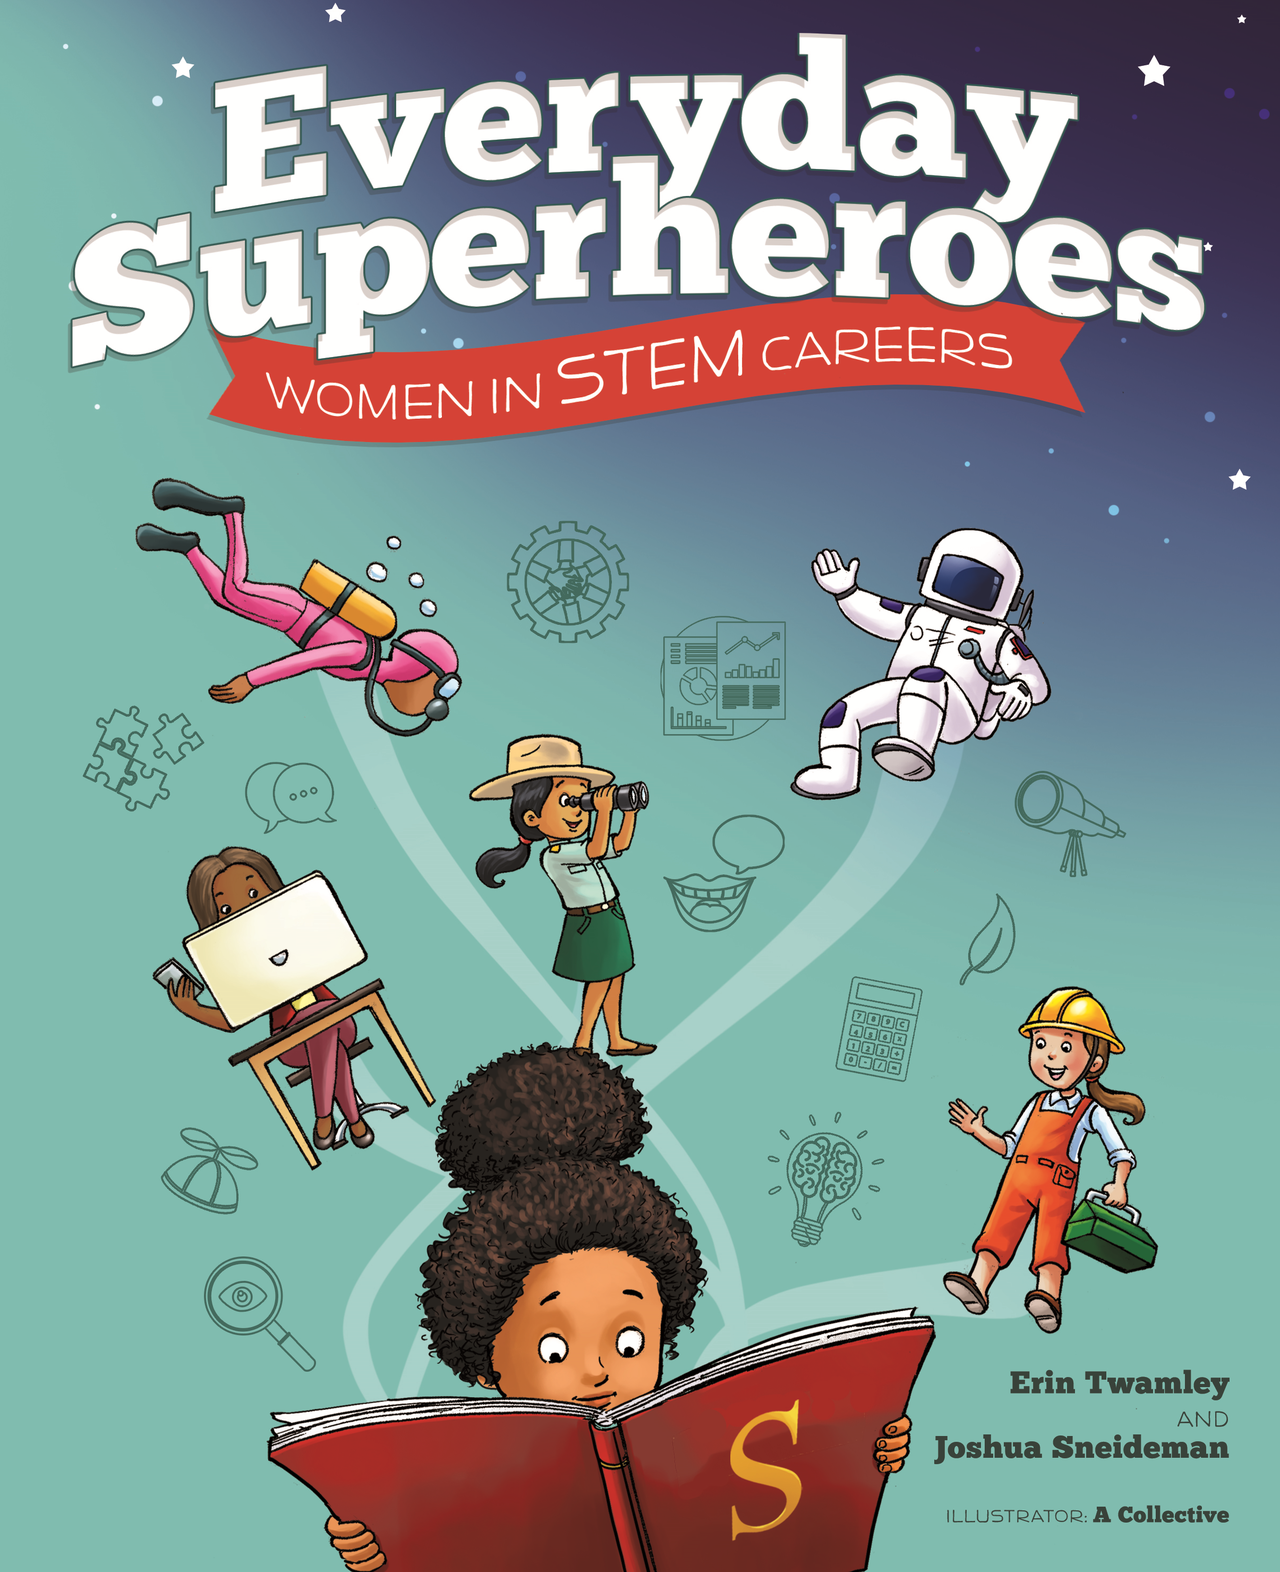 Everyday superheroes book cover